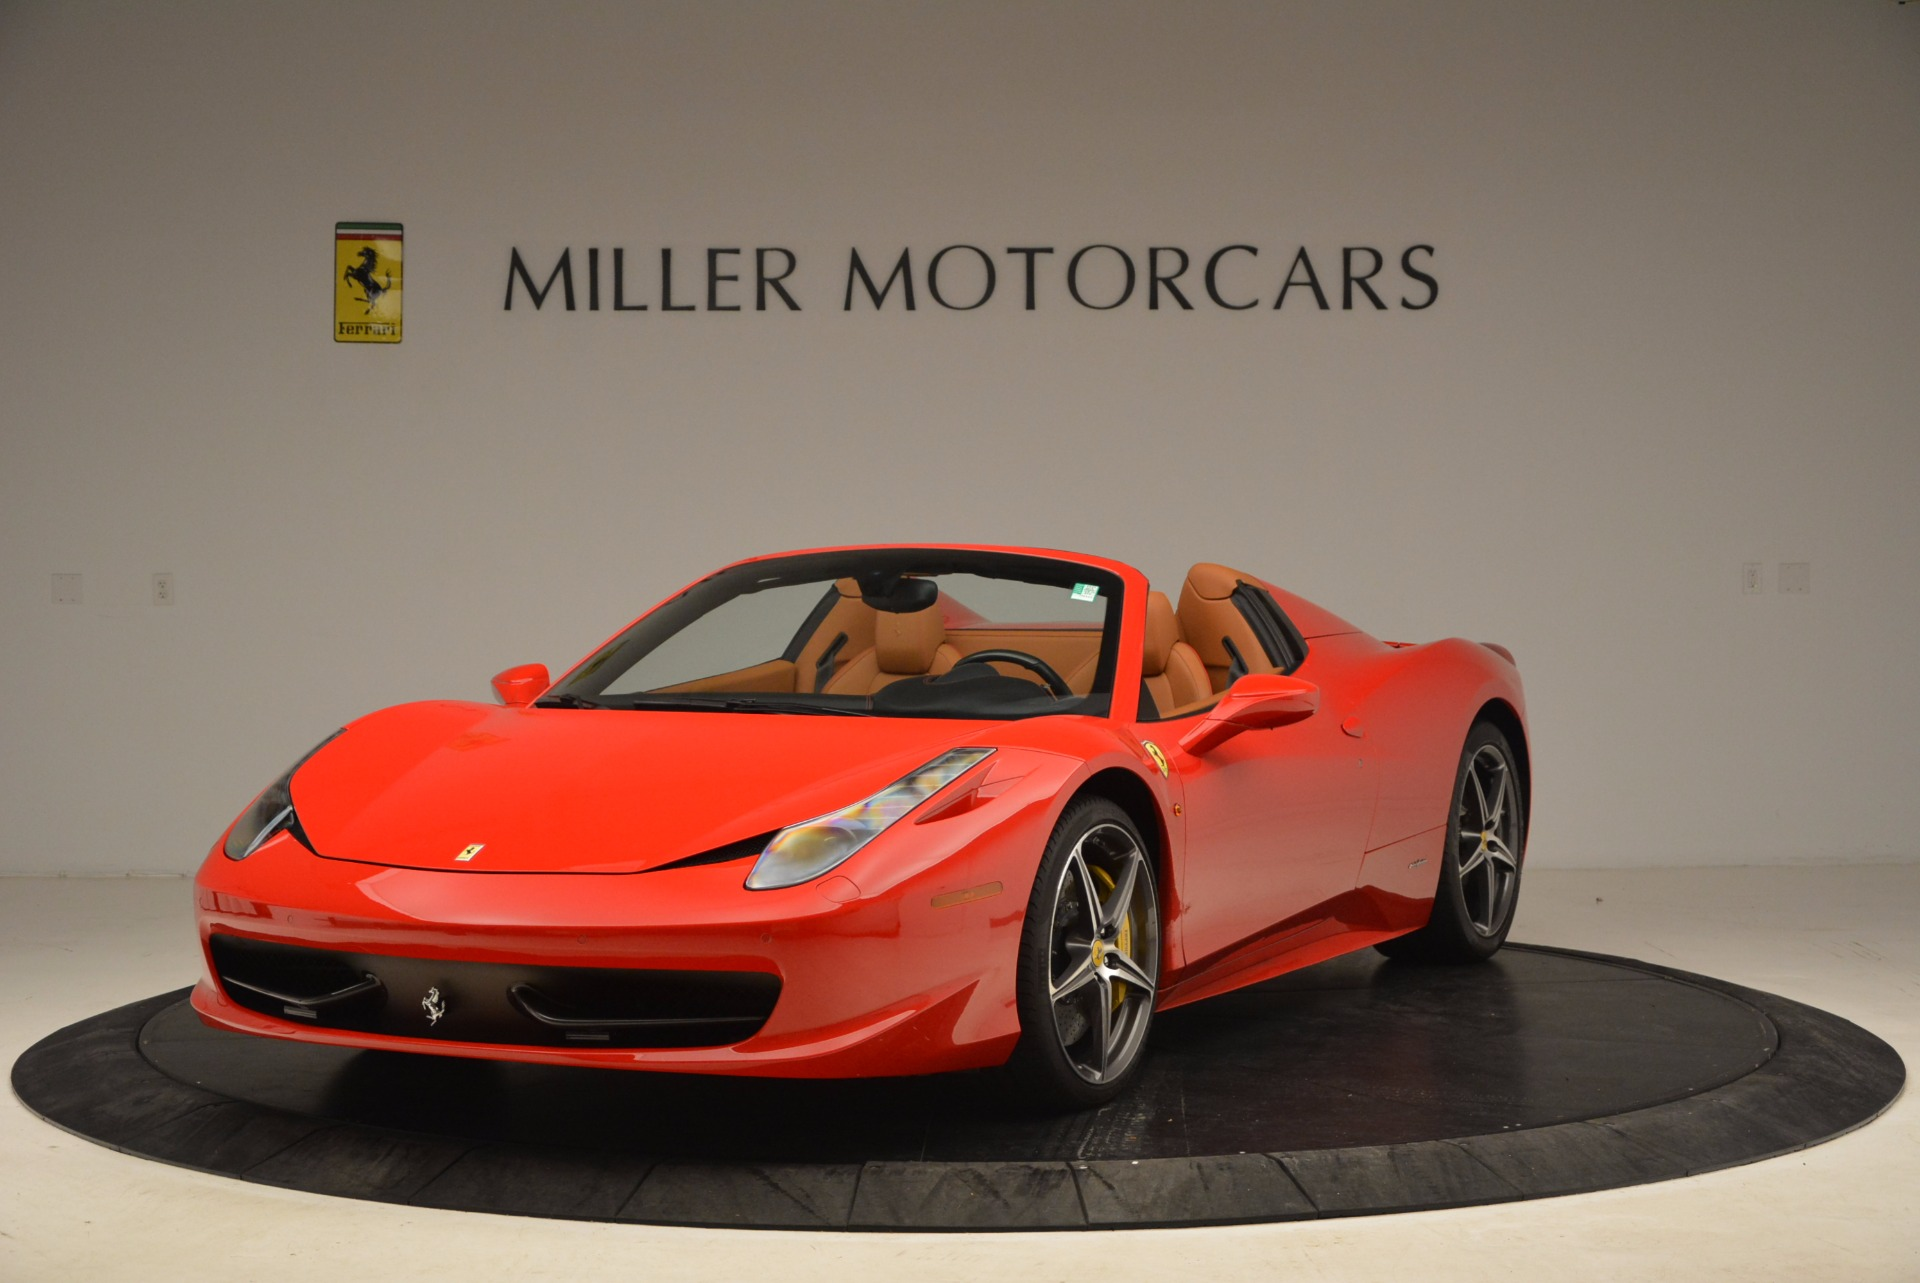 Used 2013 Ferrari 458 Spider for sale Sold at Alfa Romeo of Westport in Westport CT 06880 1